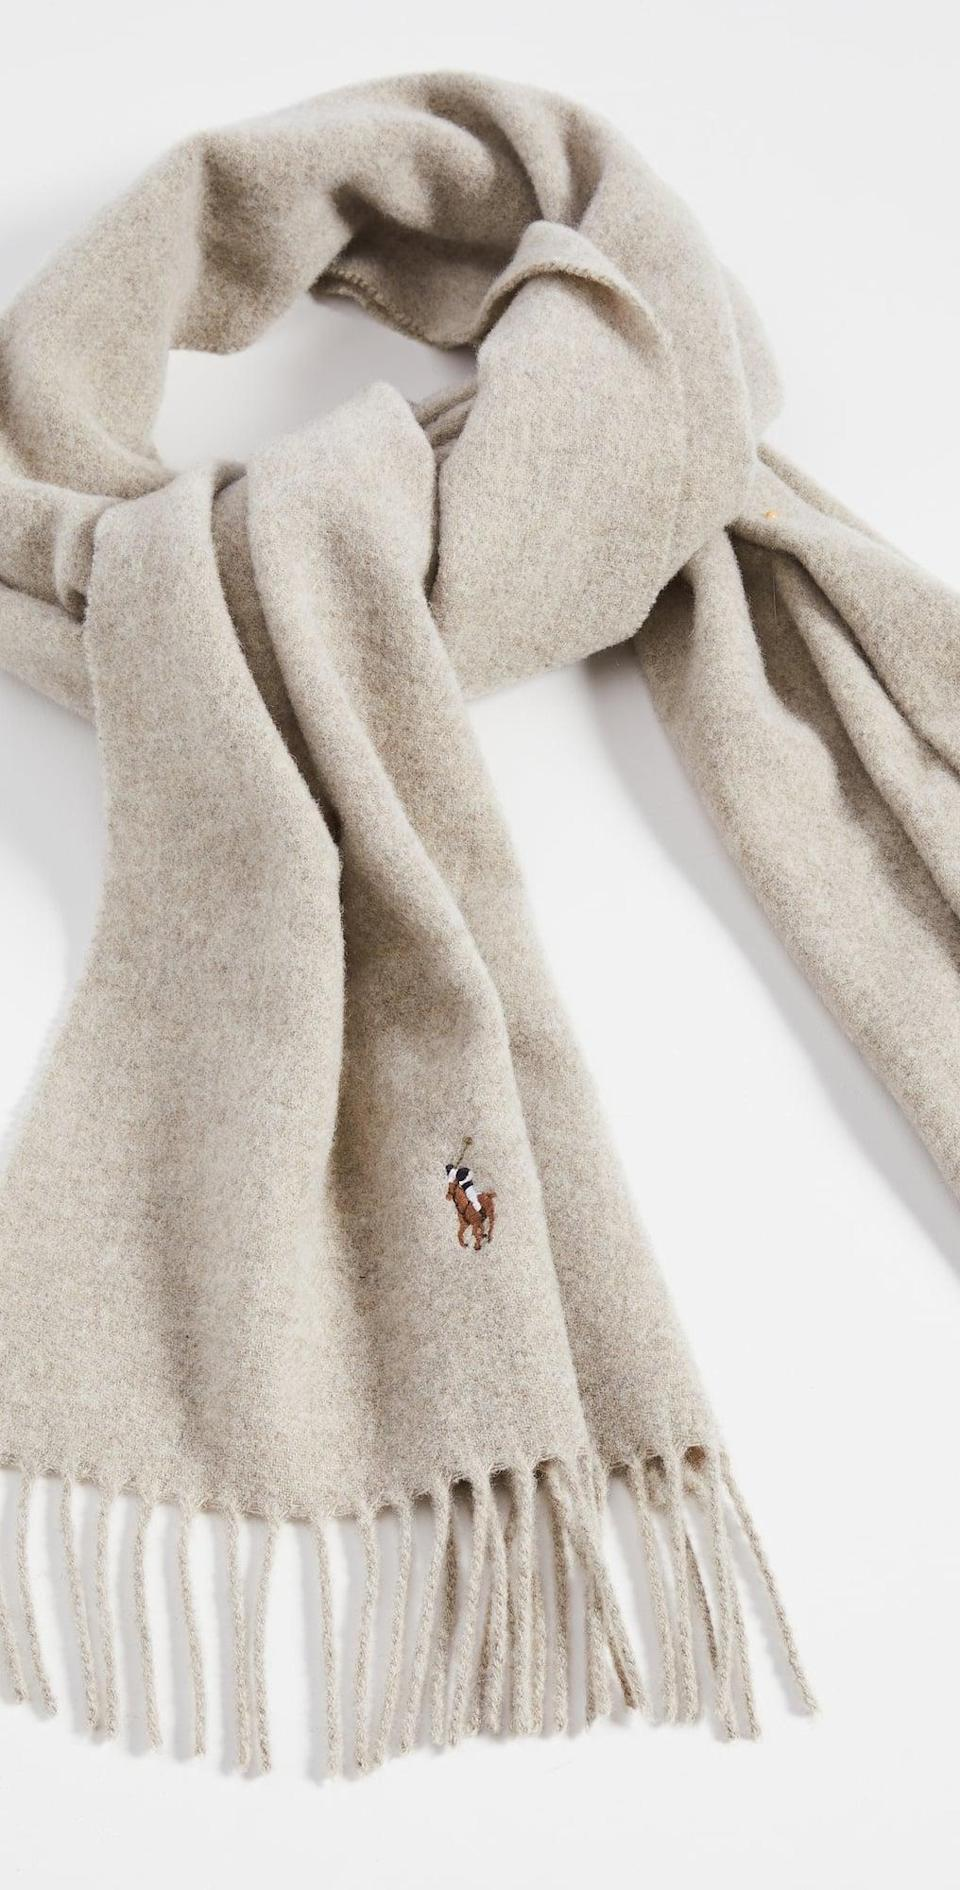 <p>This <span>Polo Ralph Lauren Signature Italian Virgin Wool Scarf</span> ($75) will literally feel like giving yourself a warm hug. It looks soft, cozy and comfortable to keep on all day.</p>